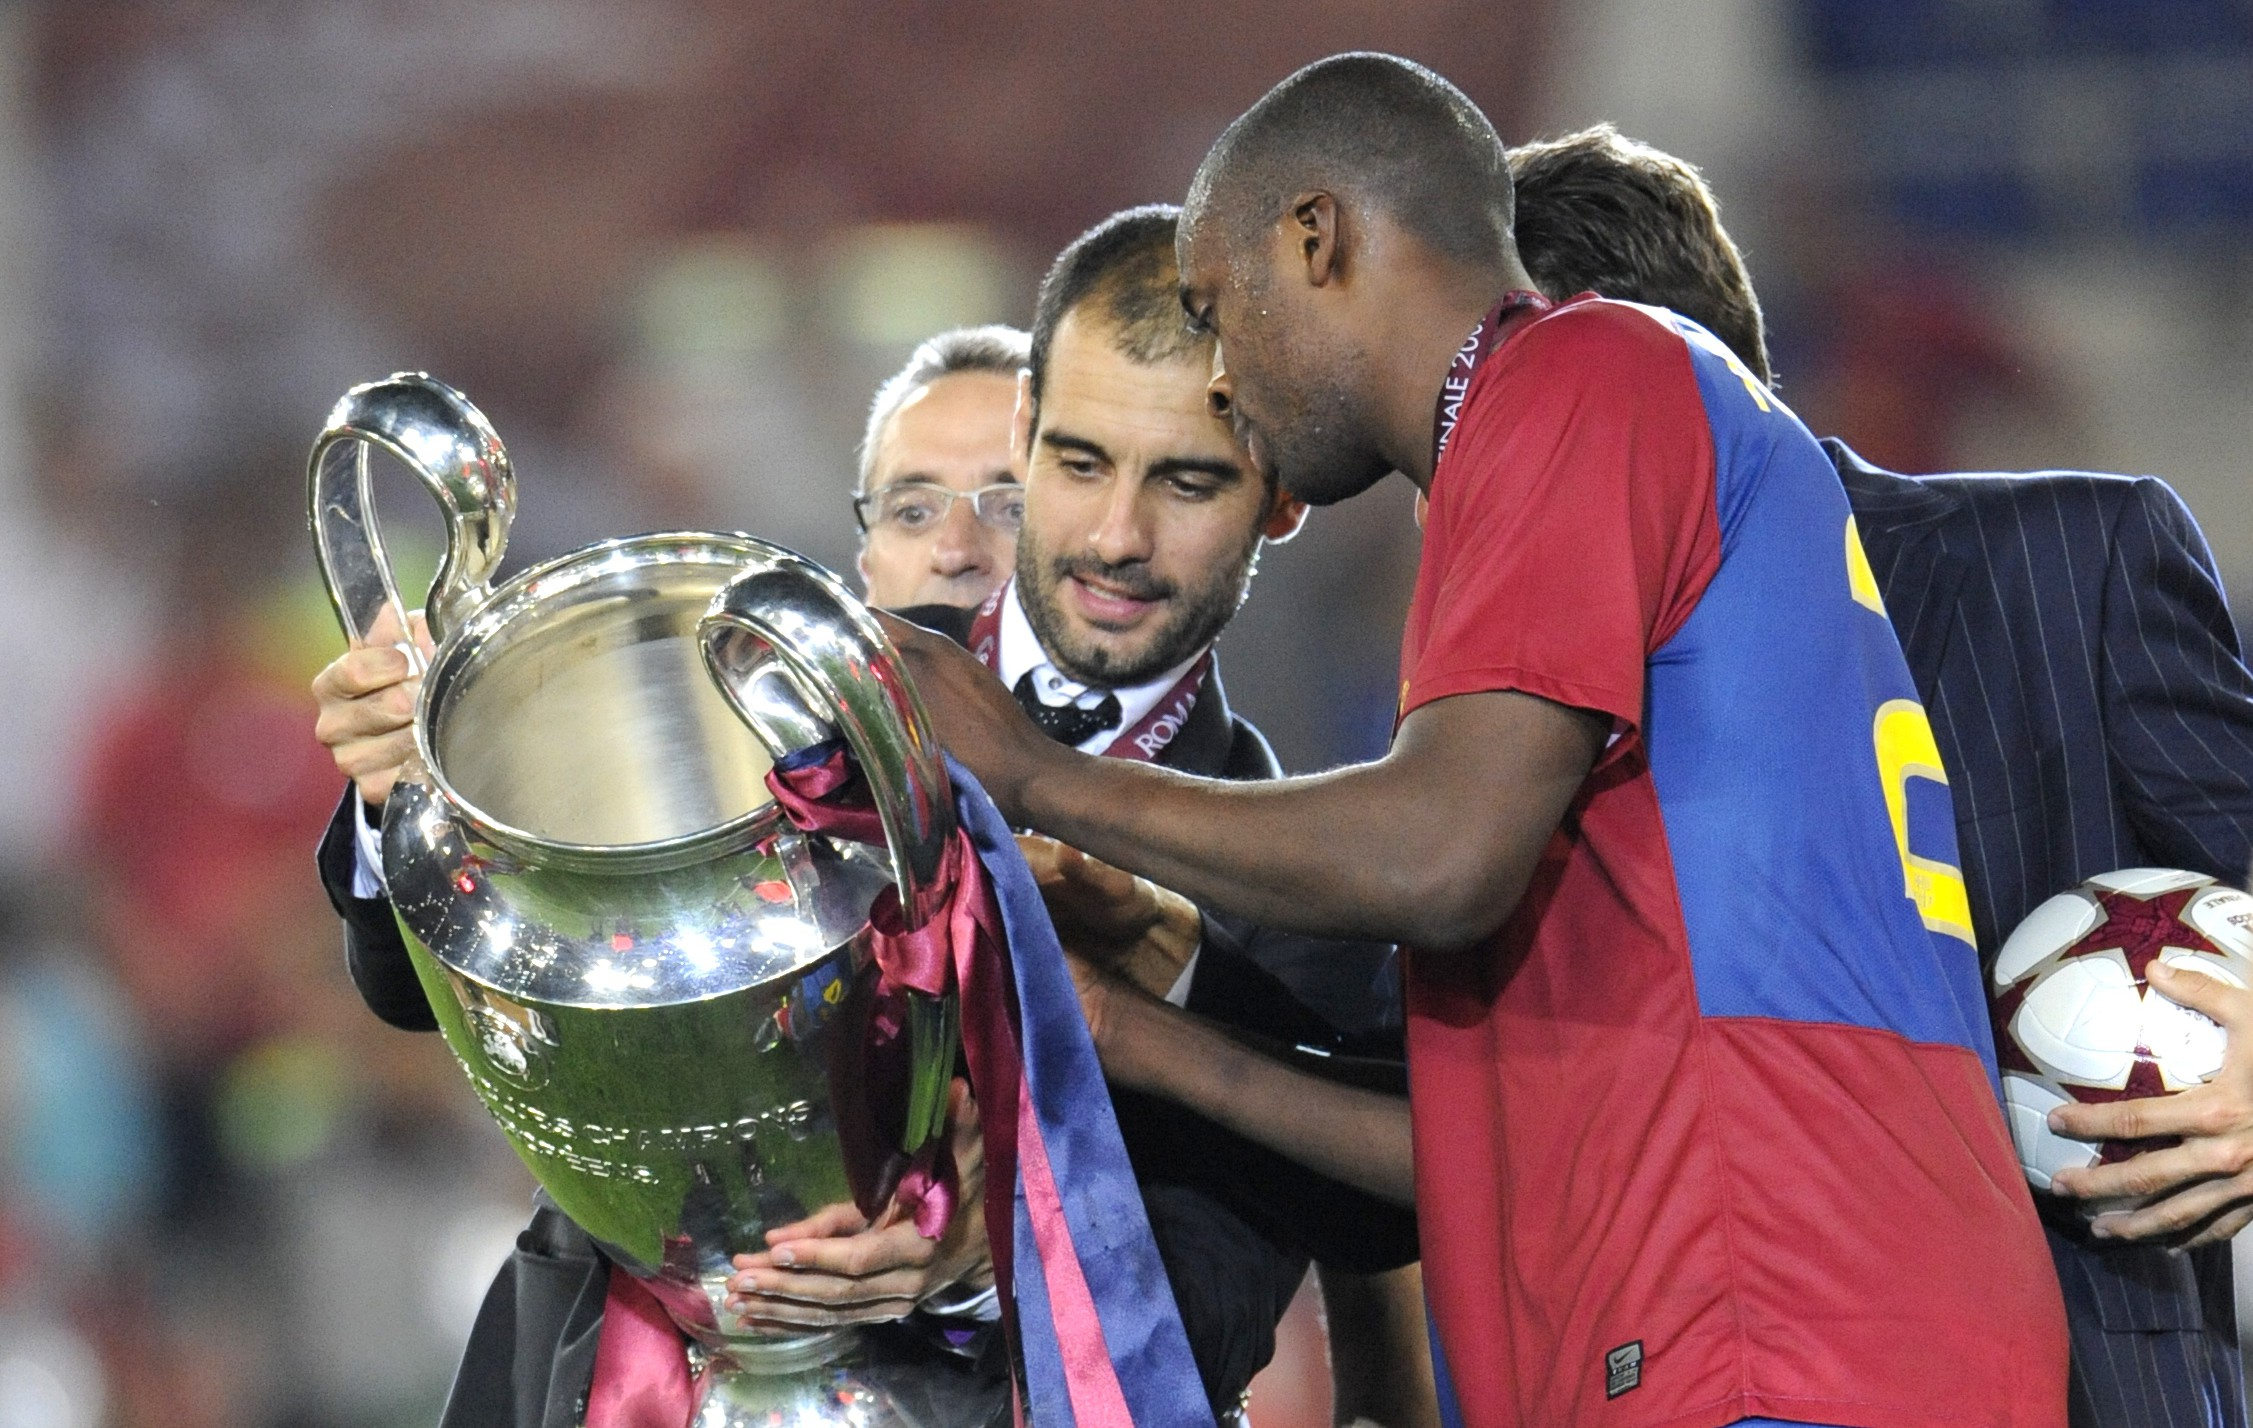 ROME - MAY 27: Barcelona coach Josep Guardiola holds the trophy with Yaya Toure (right) after the UEFA Champions League Final match between Barcelona and Manchester United at the Stadio Olimpico on May 27, 2009 in Rome, Italy. Barcelona won the match 2-0. (Photo by Bob Thomas/Getty Images)